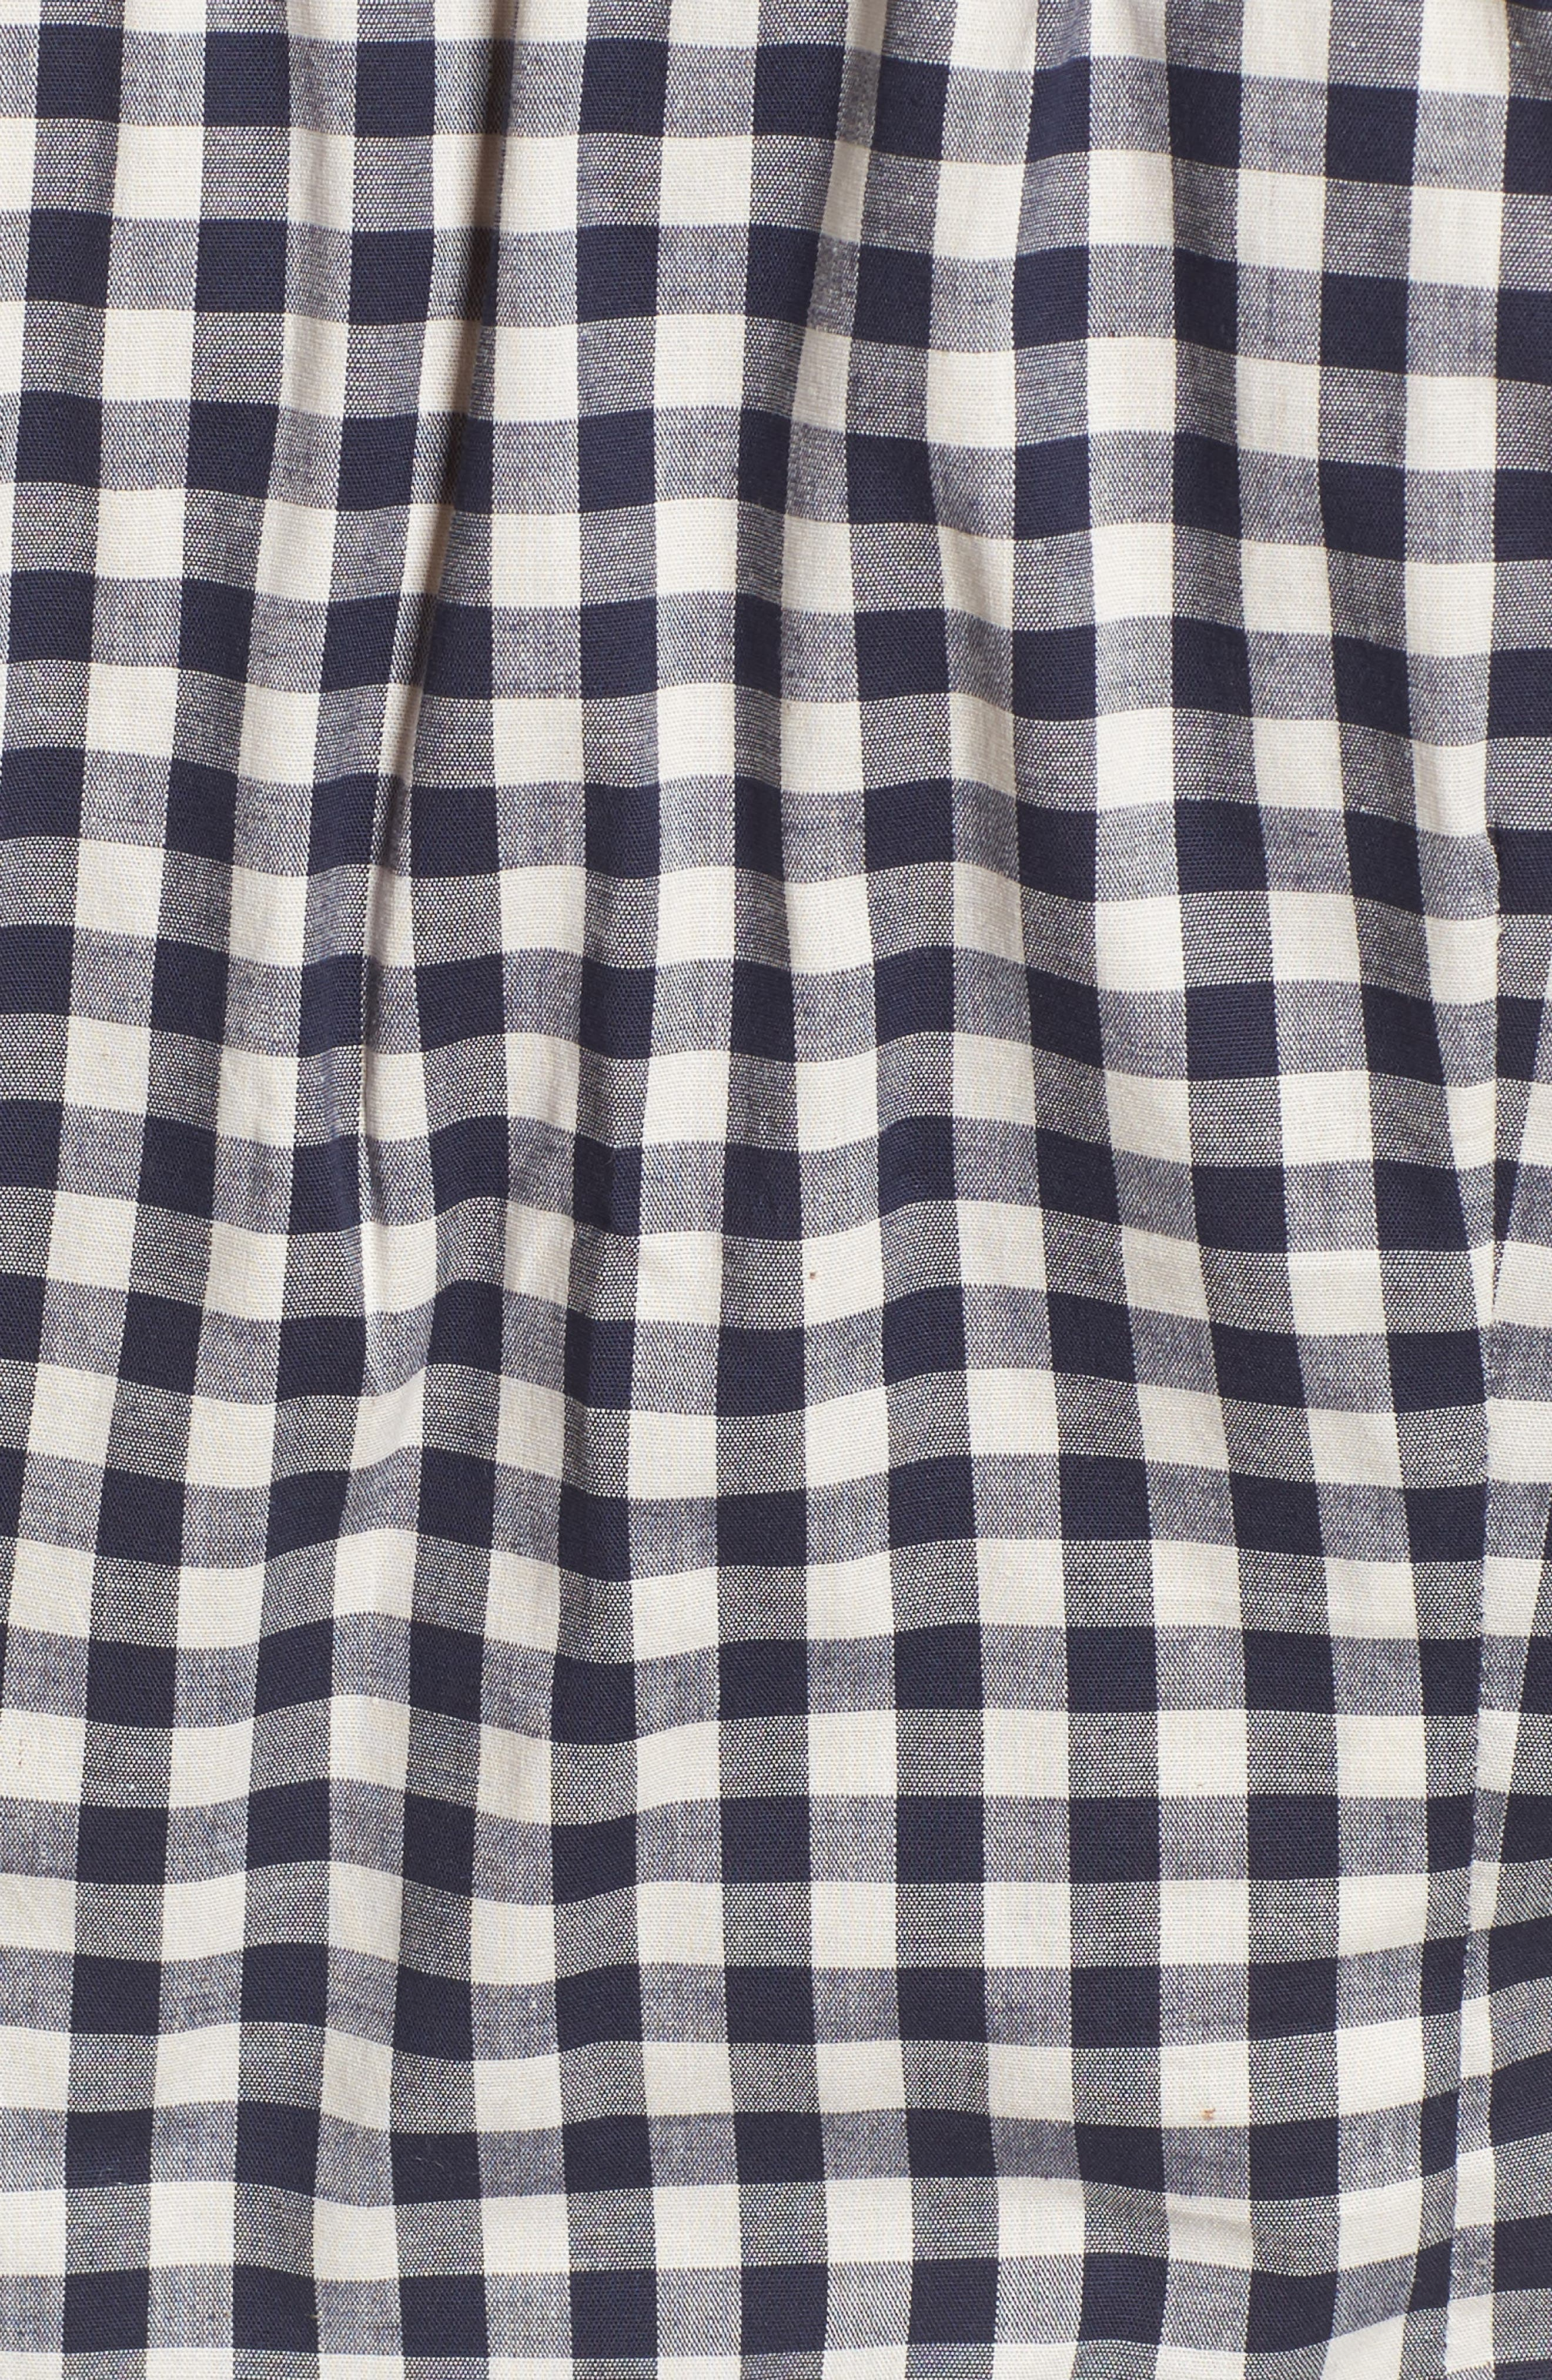 Bell Sleeve Off the Shoulder Crop Top,                             Alternate thumbnail 5, color,                             Navy/ White Gingham